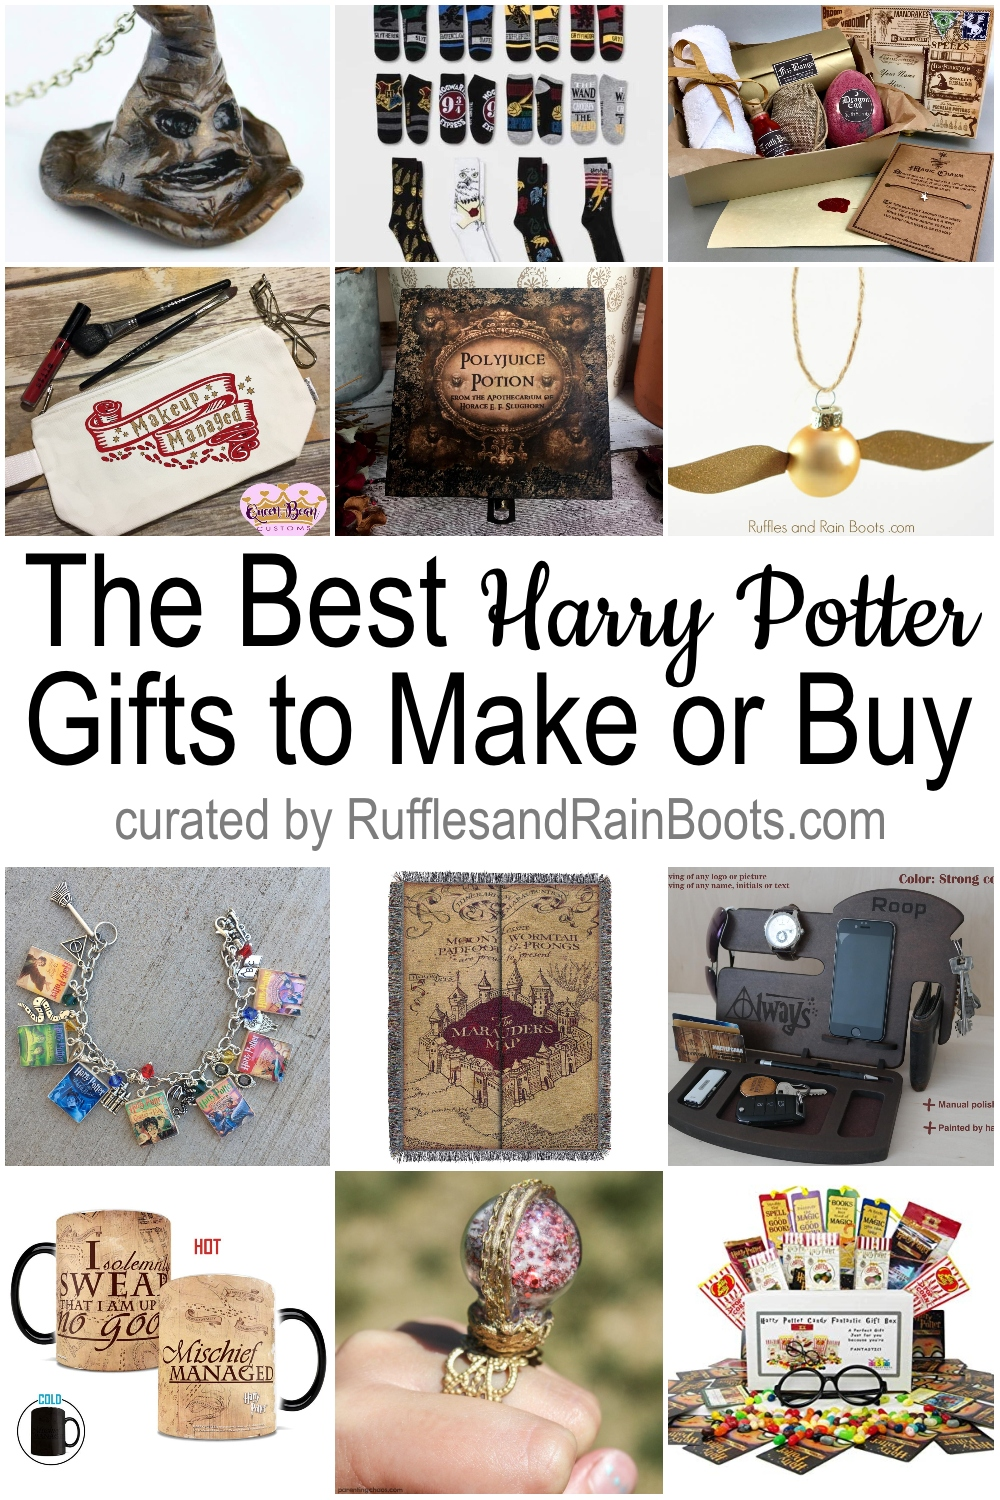 photo collage of harry potter gift ideas to make or buy with text which reads the best harry potter gifts to make or buy